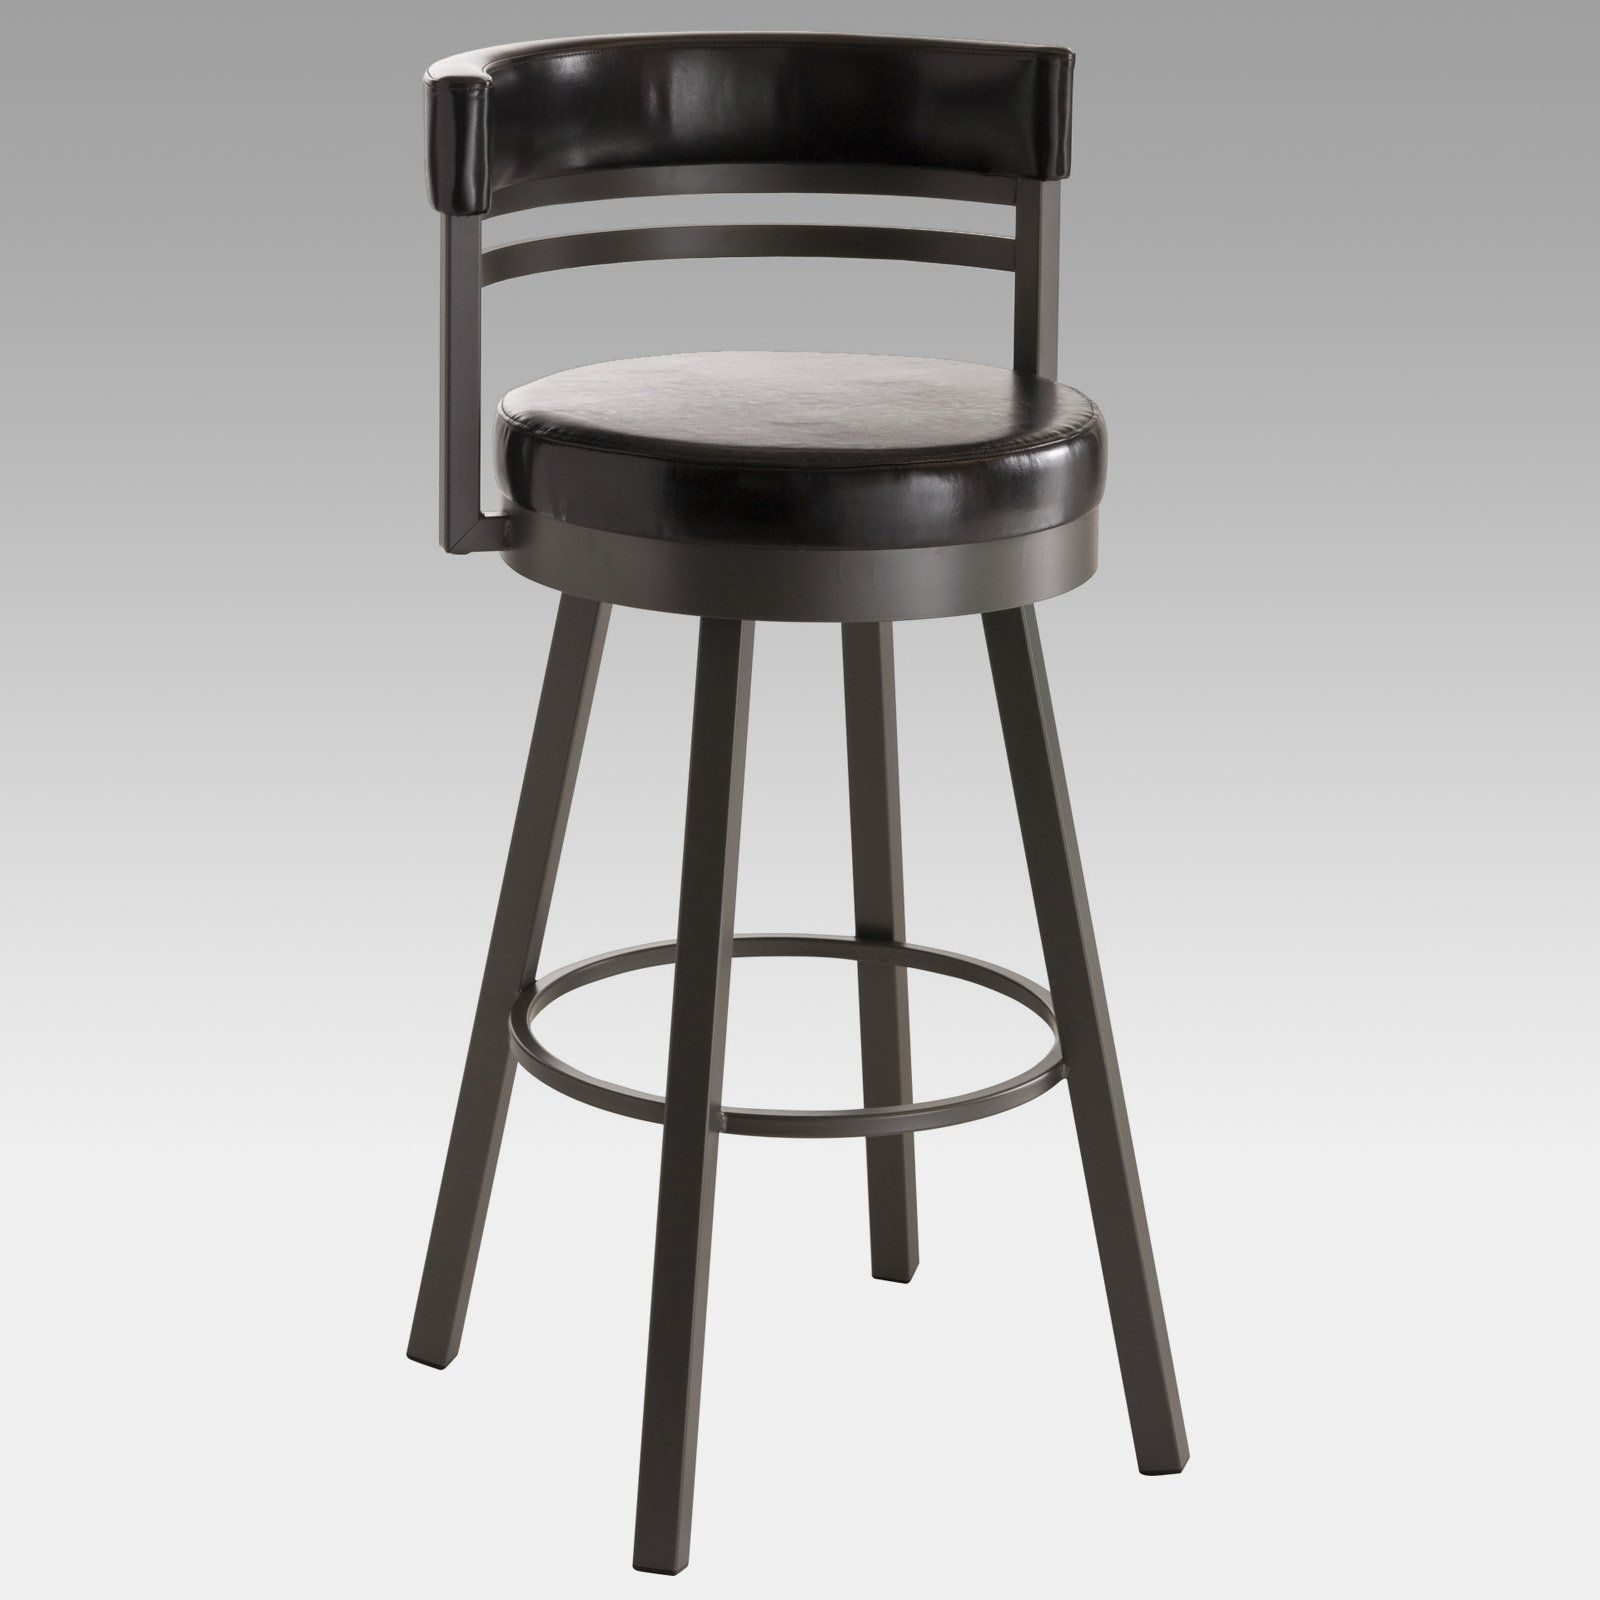 Amisco ronny swivel stool modern bar stools and counter stools - Amisco Ronny Swivel Counter Stool Rugged Industrial Style Can Also Be Clean And Modern The Amisco Ronny Swivel Counter Stool Proves The Point